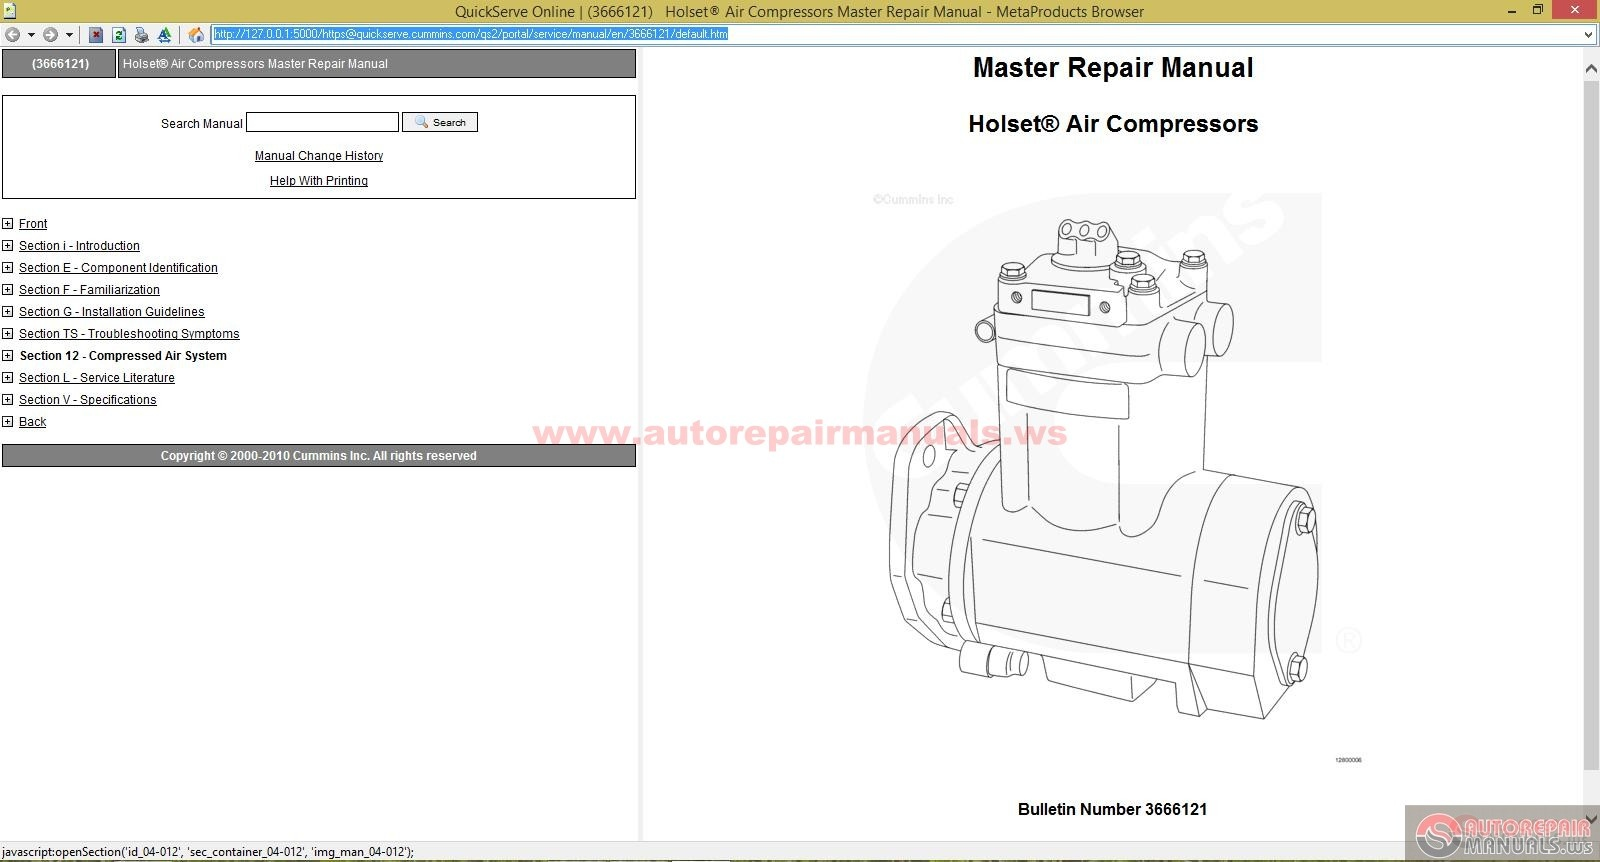 cummins holset air compressors master repair manual